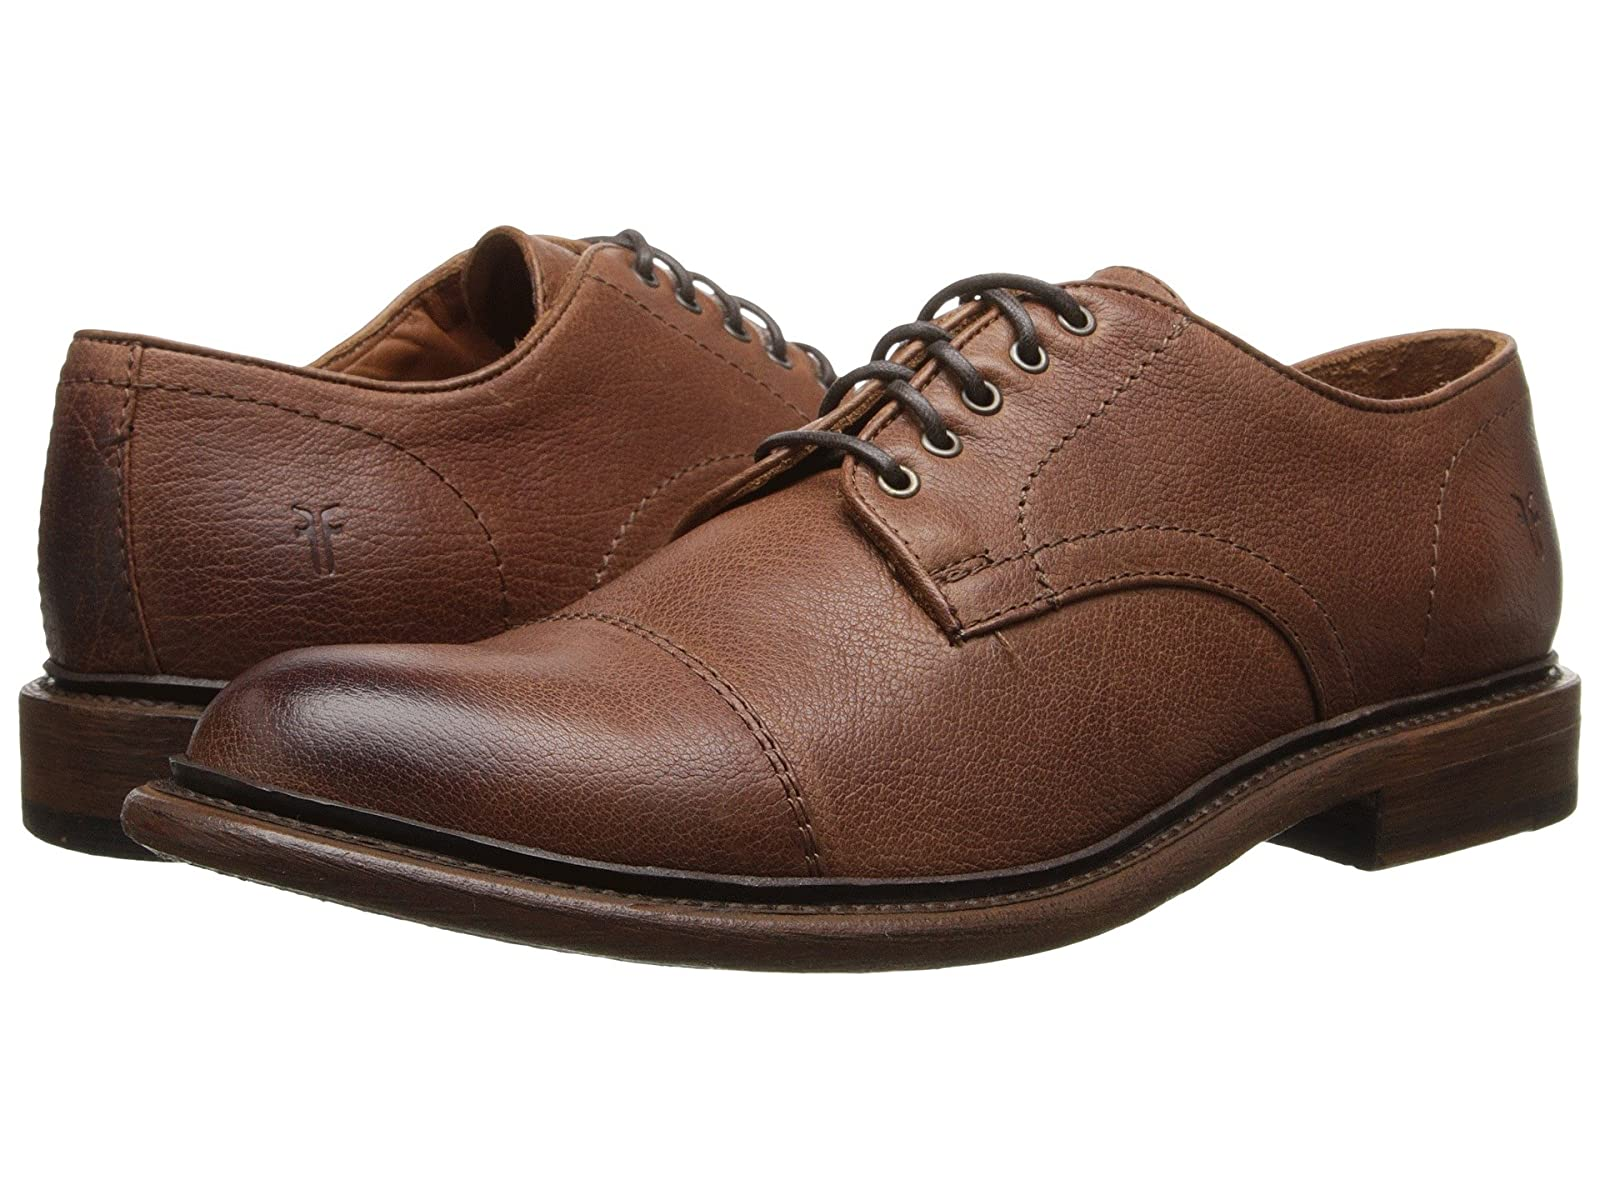 Frye Jack OxfordCheap and distinctive eye-catching shoes